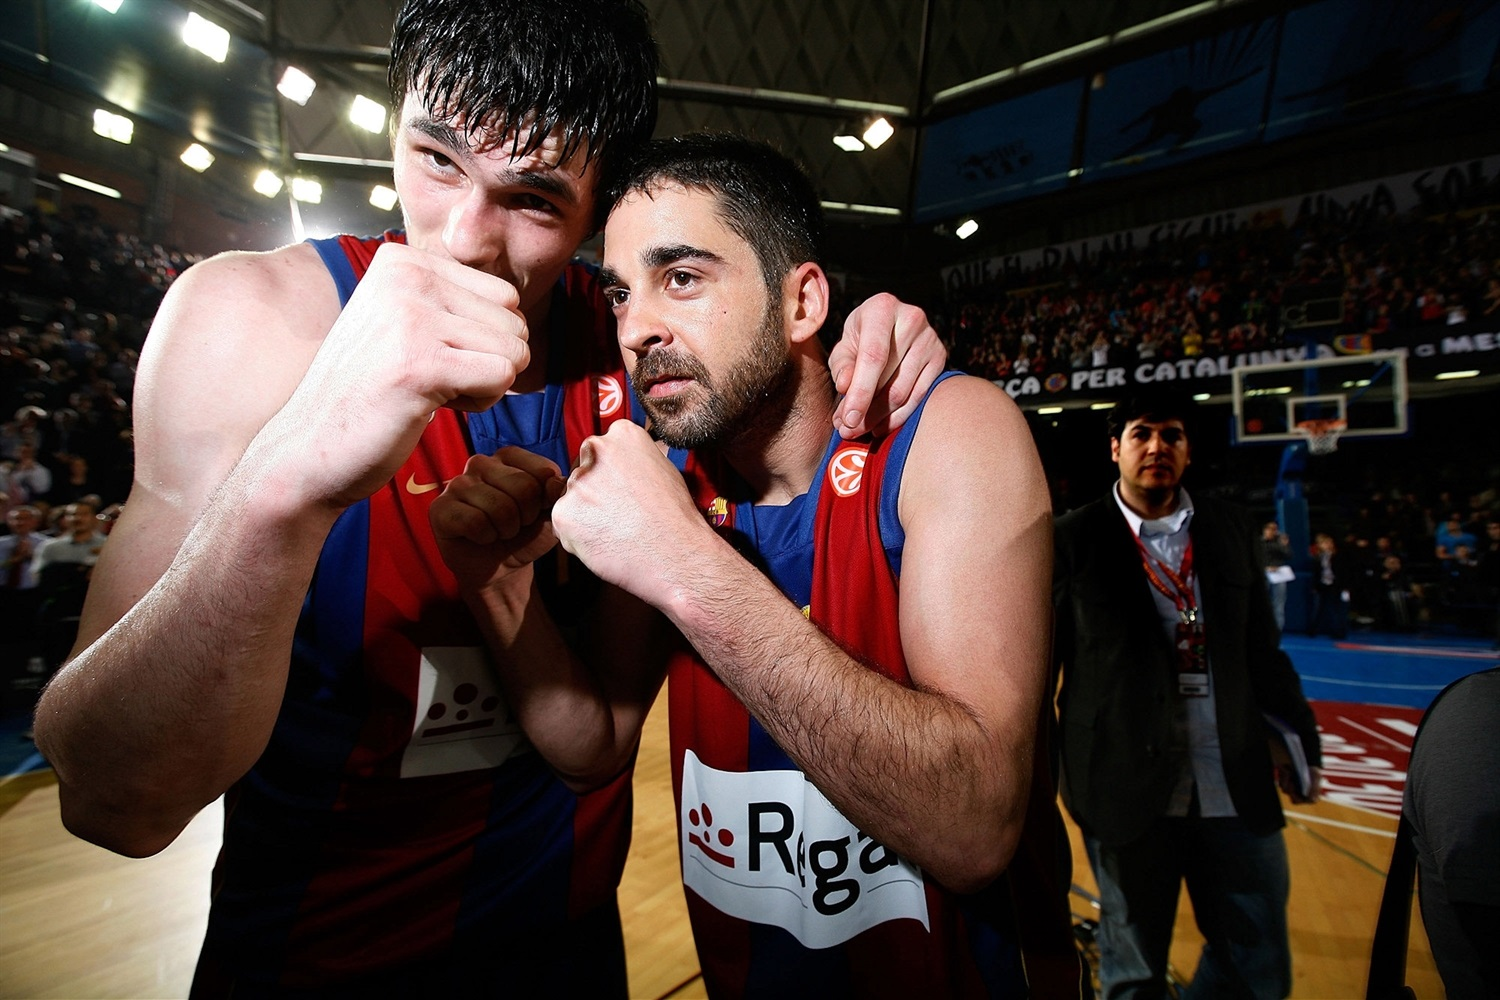 Ersan Ilyasova and Juan Carlos Navarro celebrates - Regal FC Barcelona - EB08